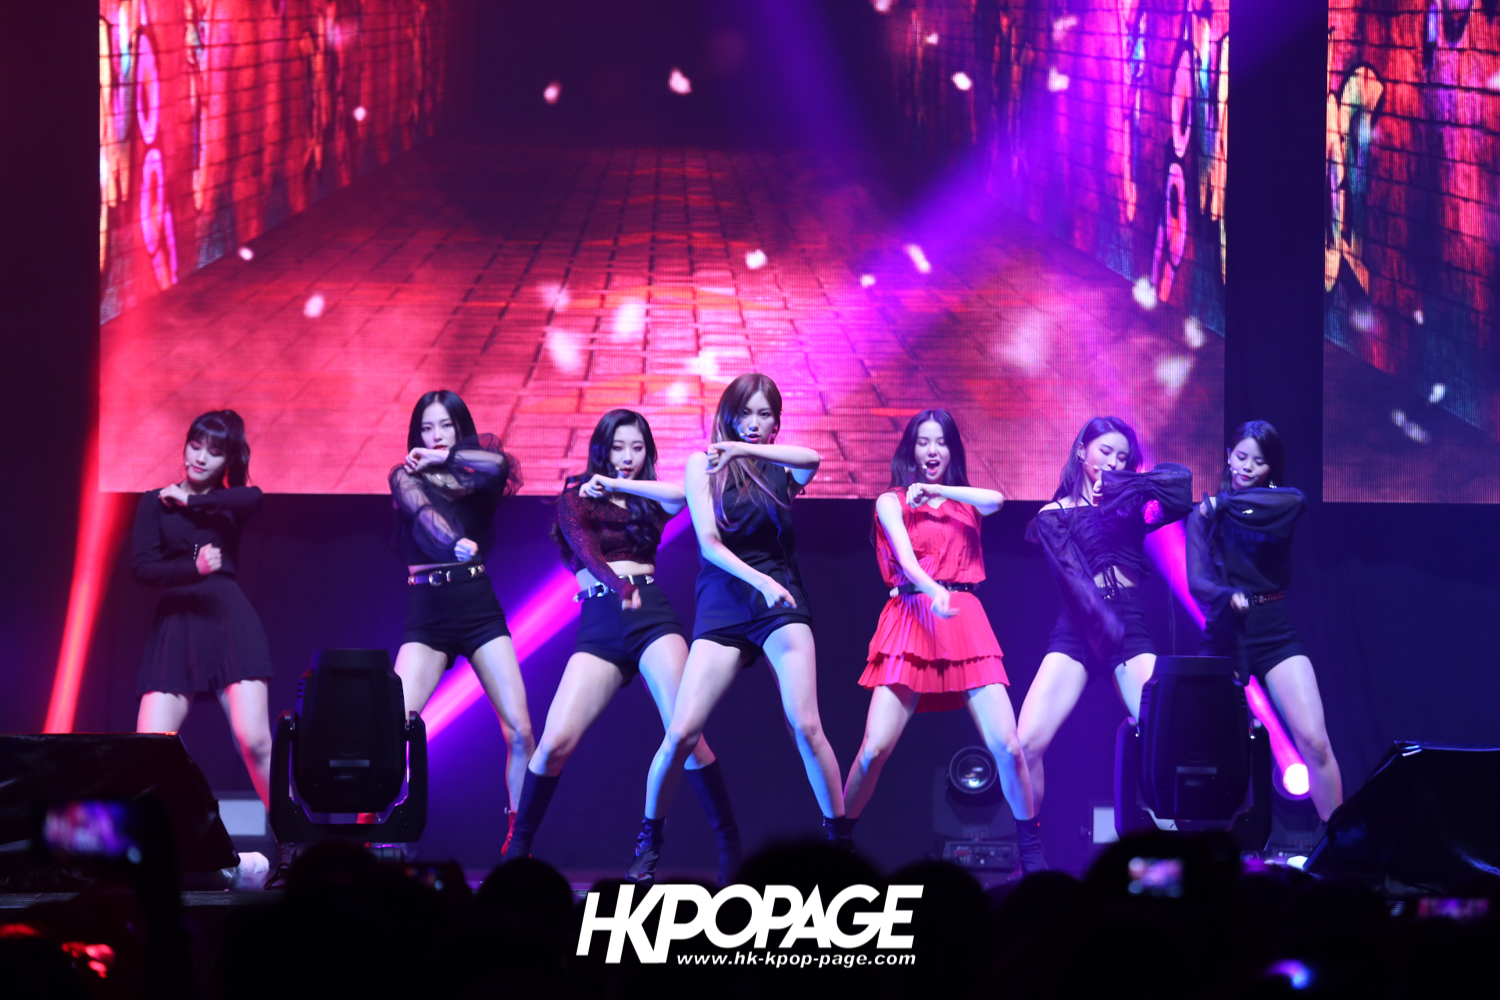 [HK.KPOP.PAGE] 180720_CLC LIVE SHOW IN HONG KONG 2018_01